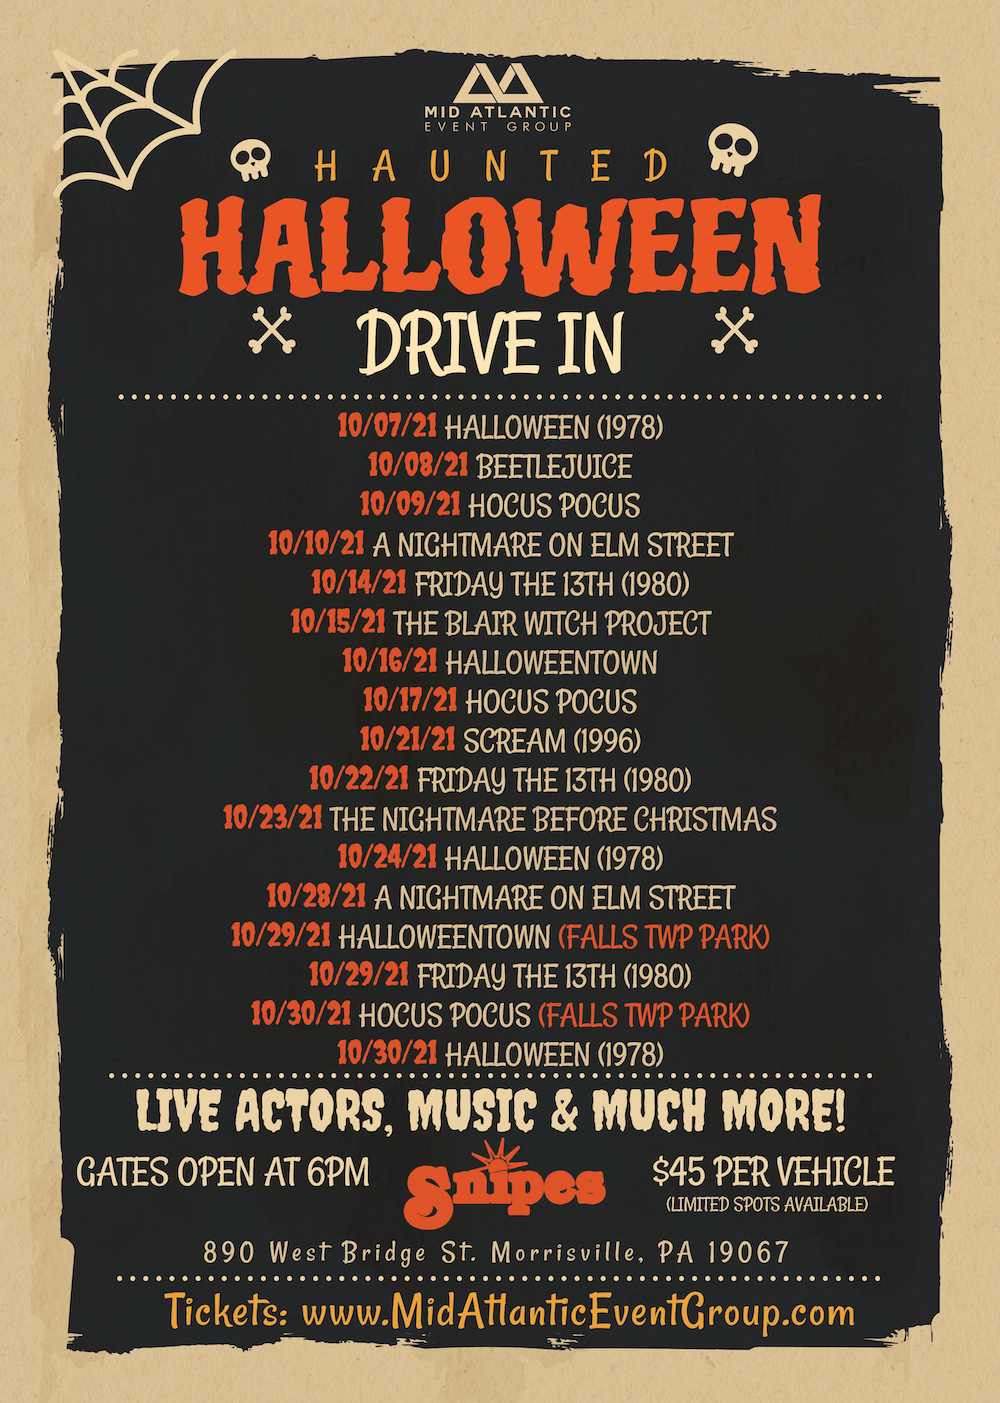 Haunted Halloween Drive In Snipes Farm 2021 Website